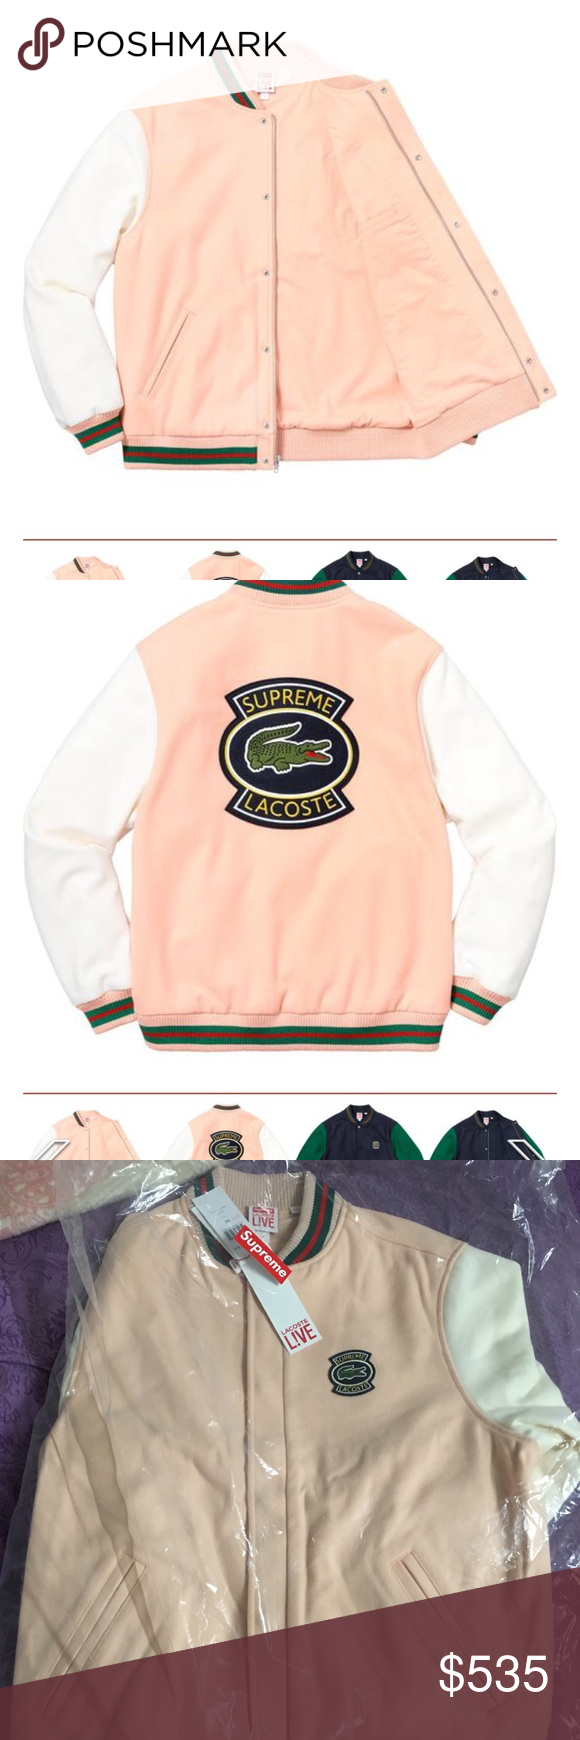 a5617985f573a Supreme x lacoste wool varsity jacket peach M size New item! I have receipt  too! Supreme Jackets   Coats